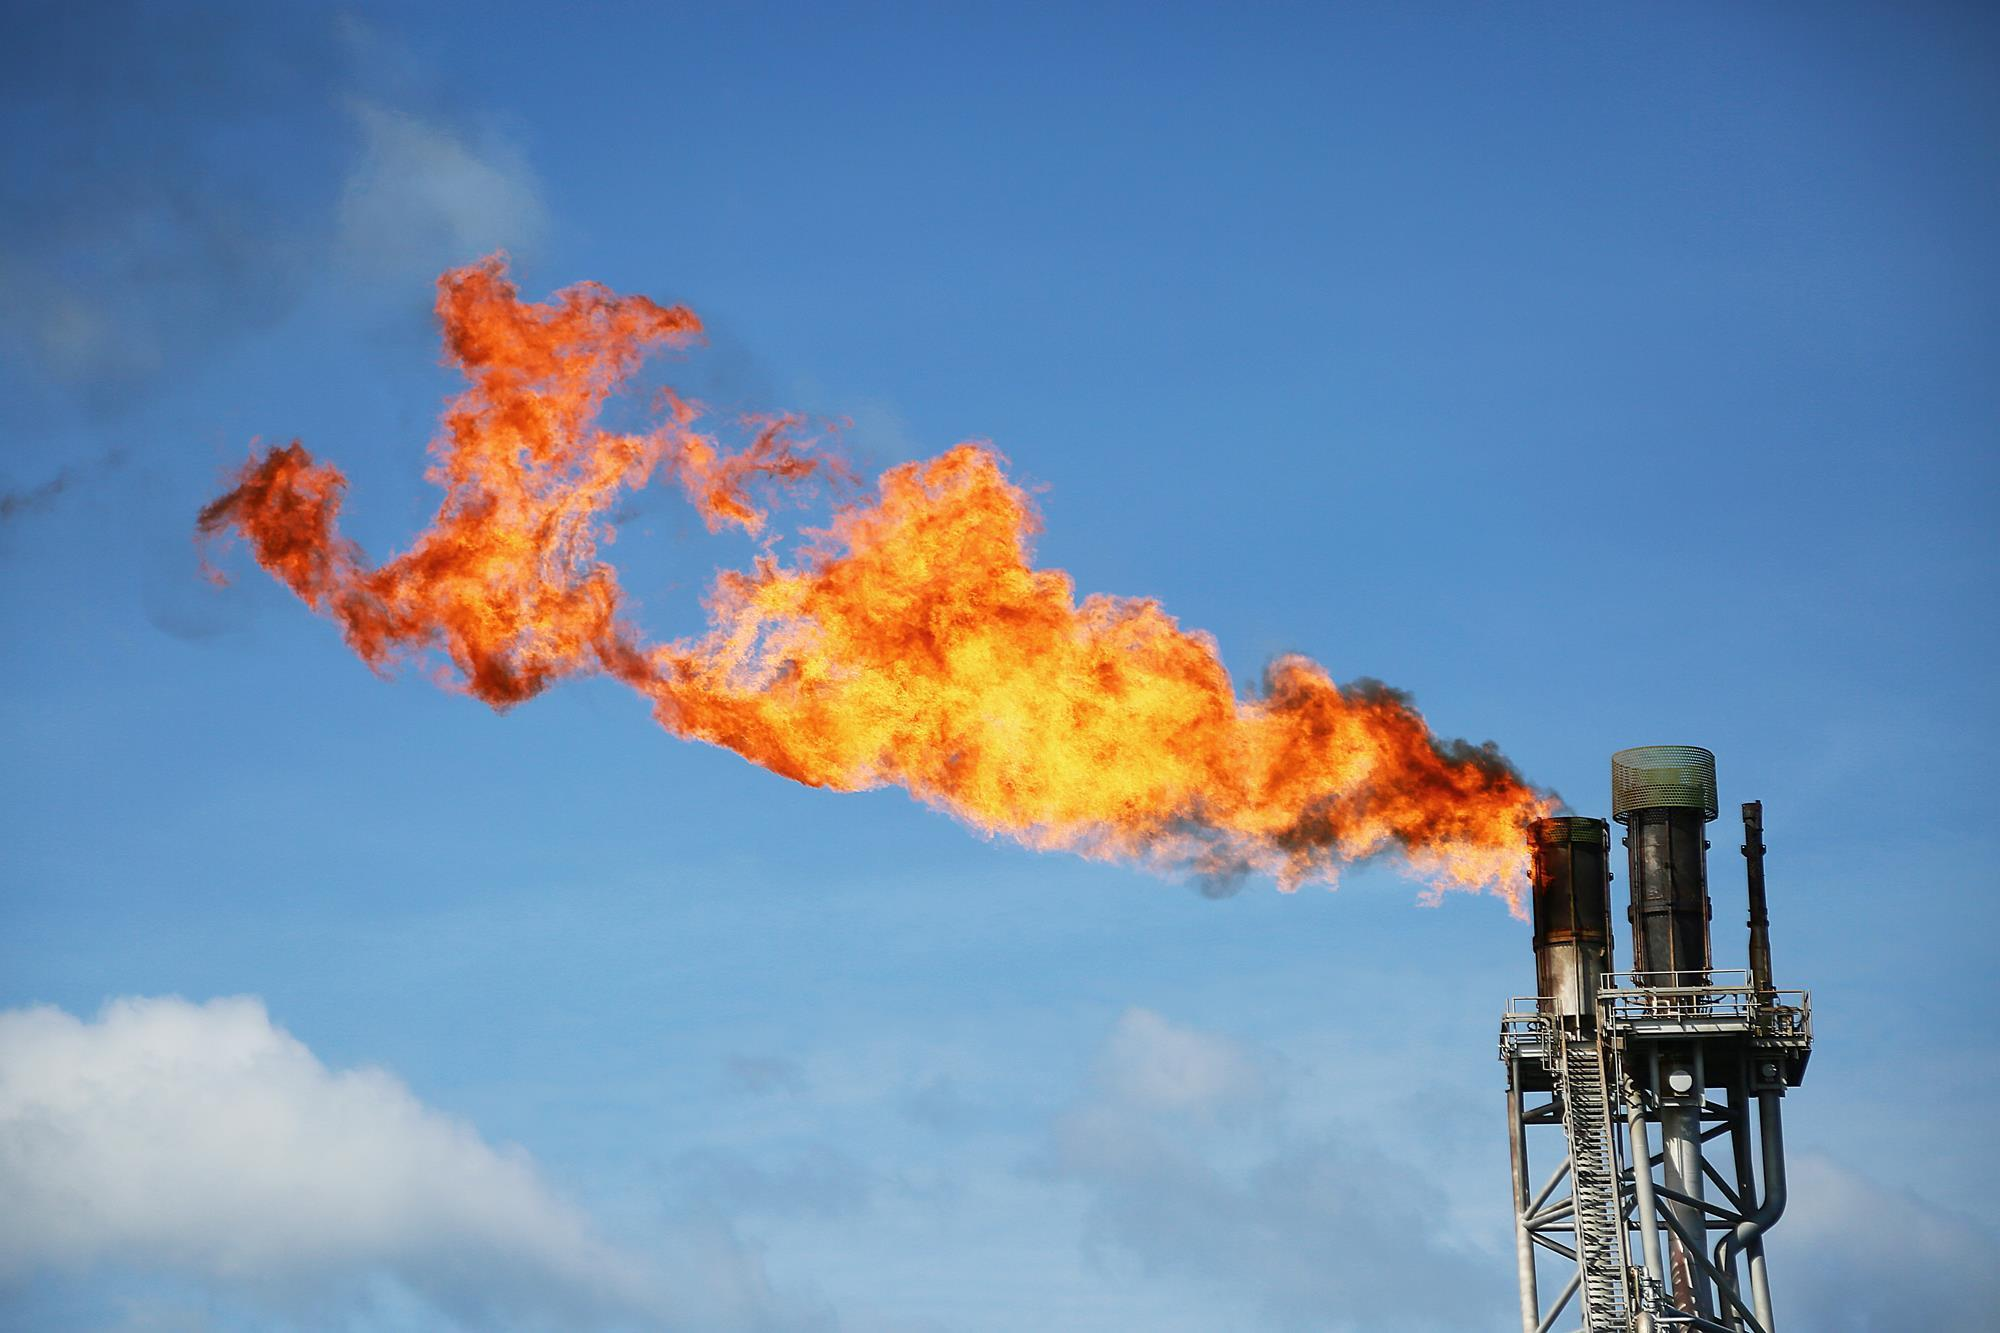 Gas flaring: FG receives 226 bids for 178 flare points